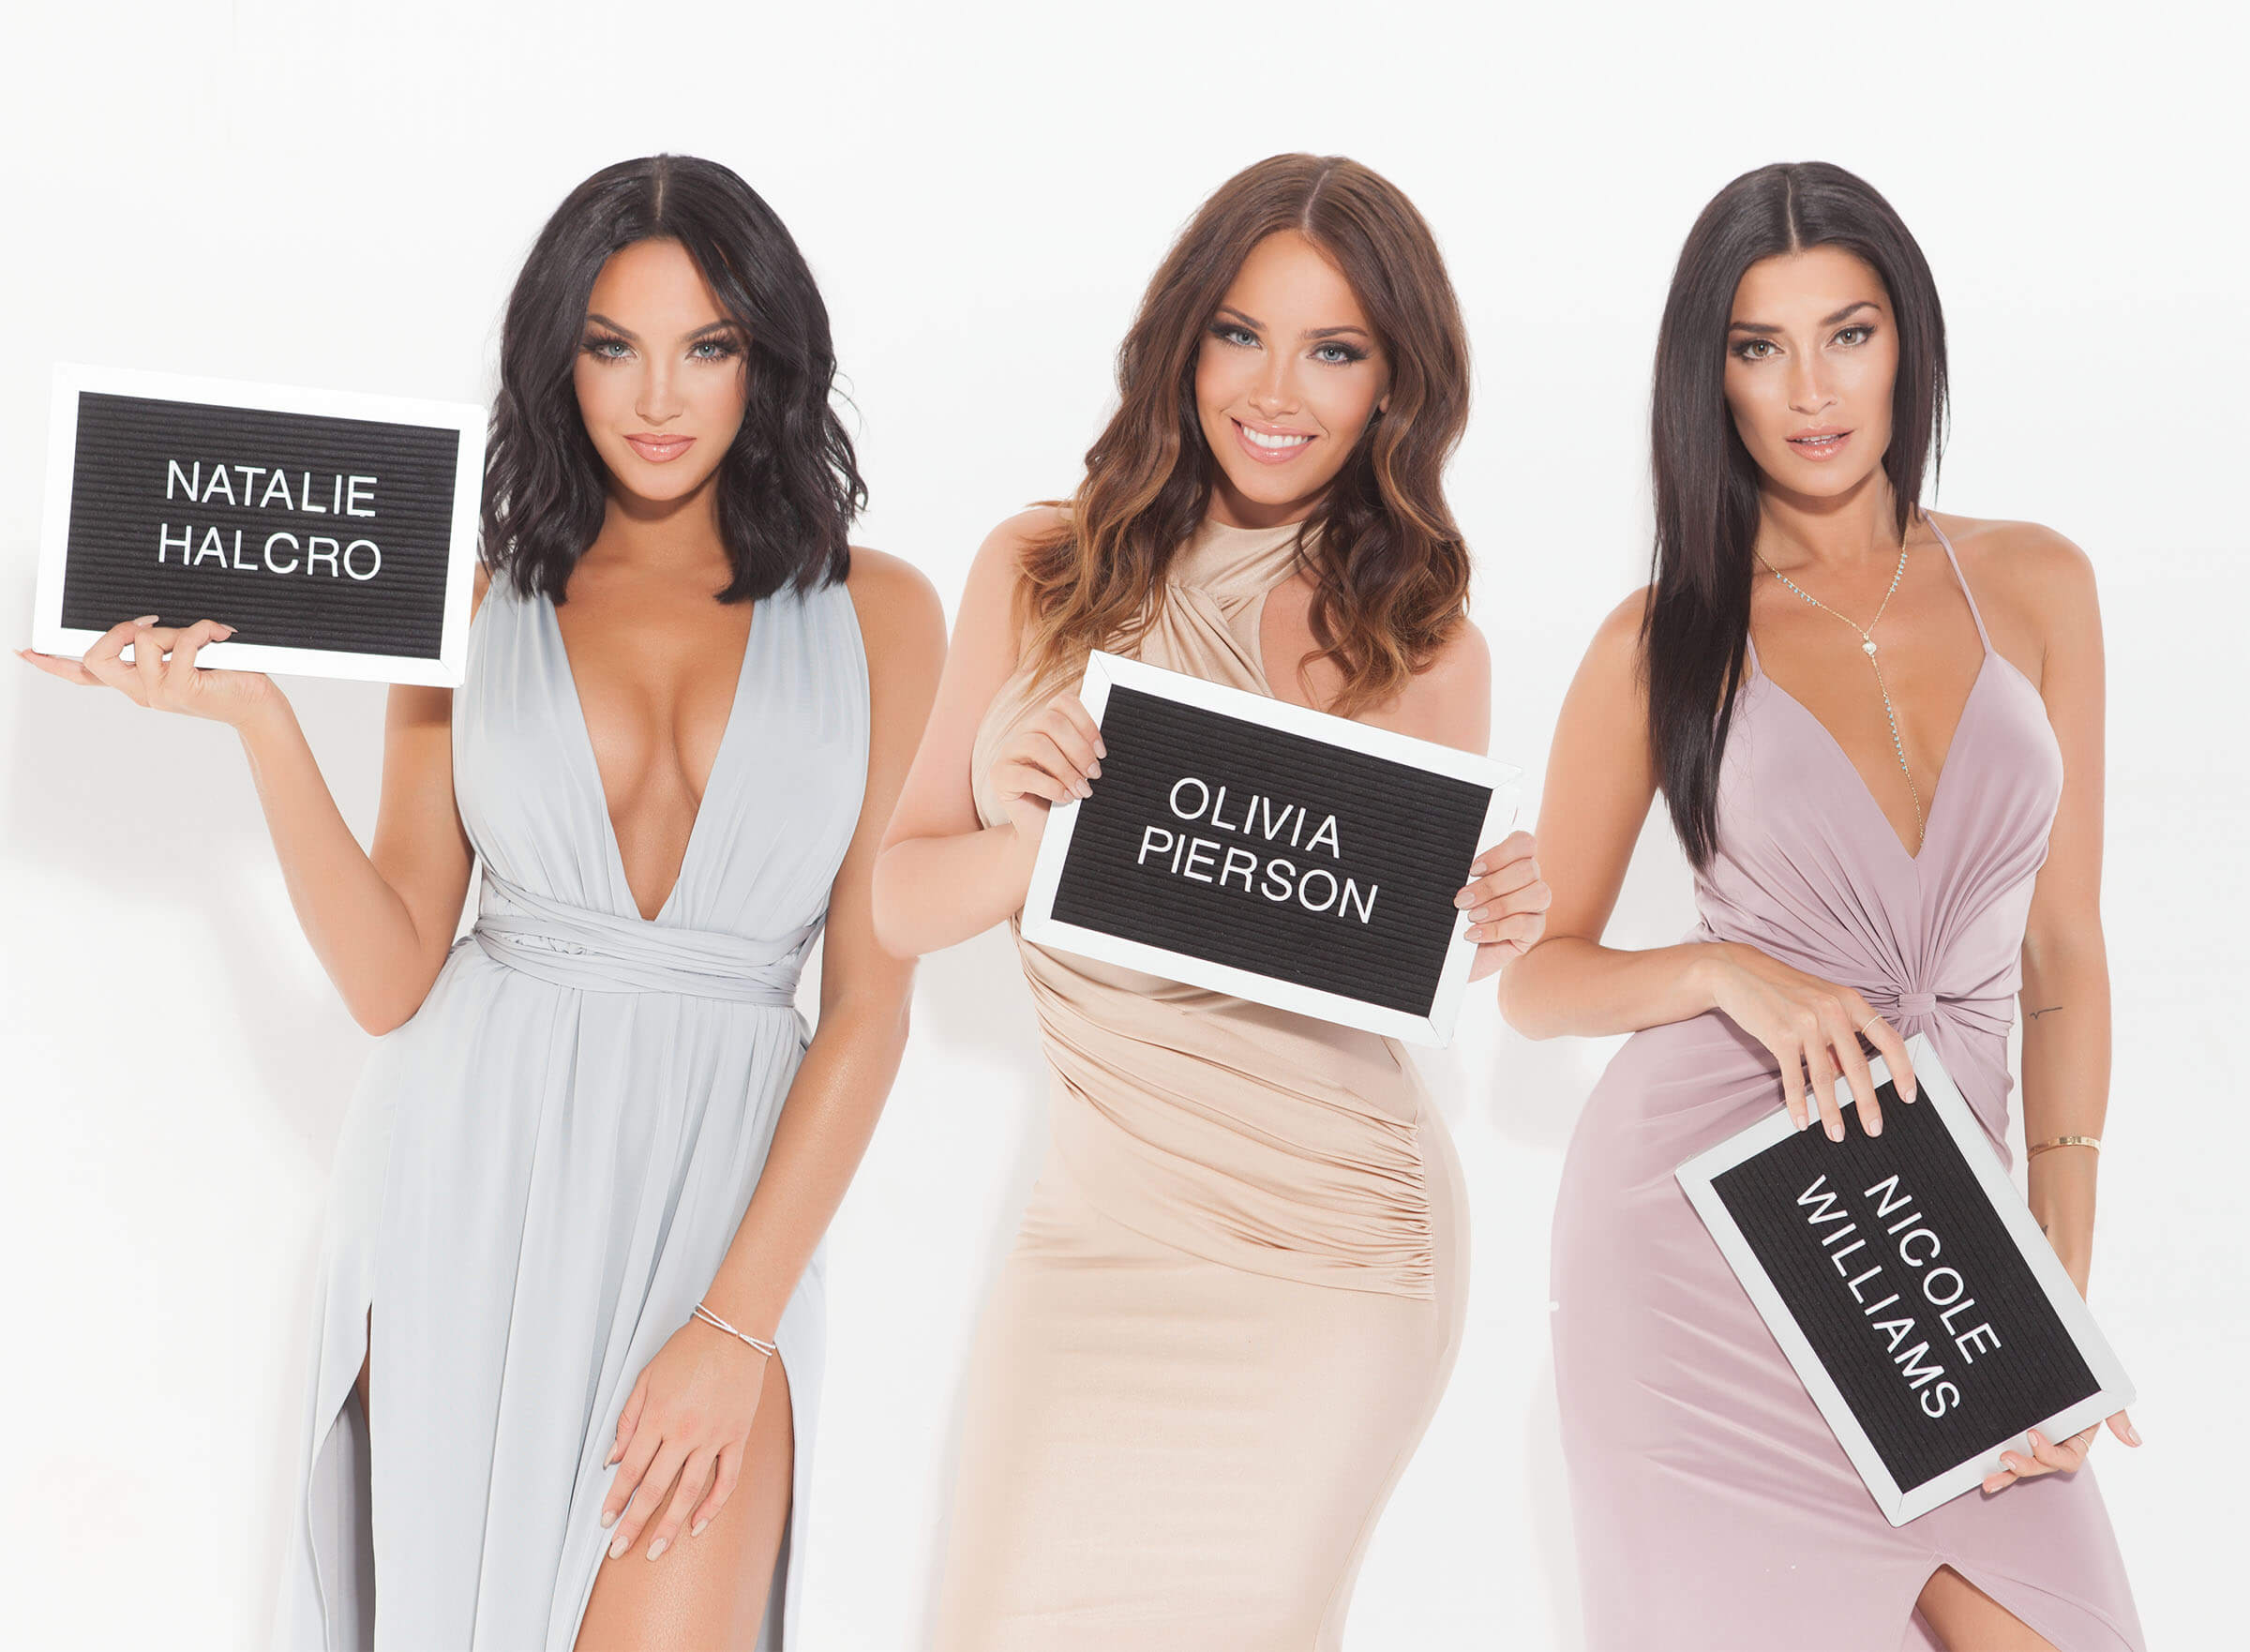 E! Premiering Show WAGS: Wives And Girlfriends of Sports